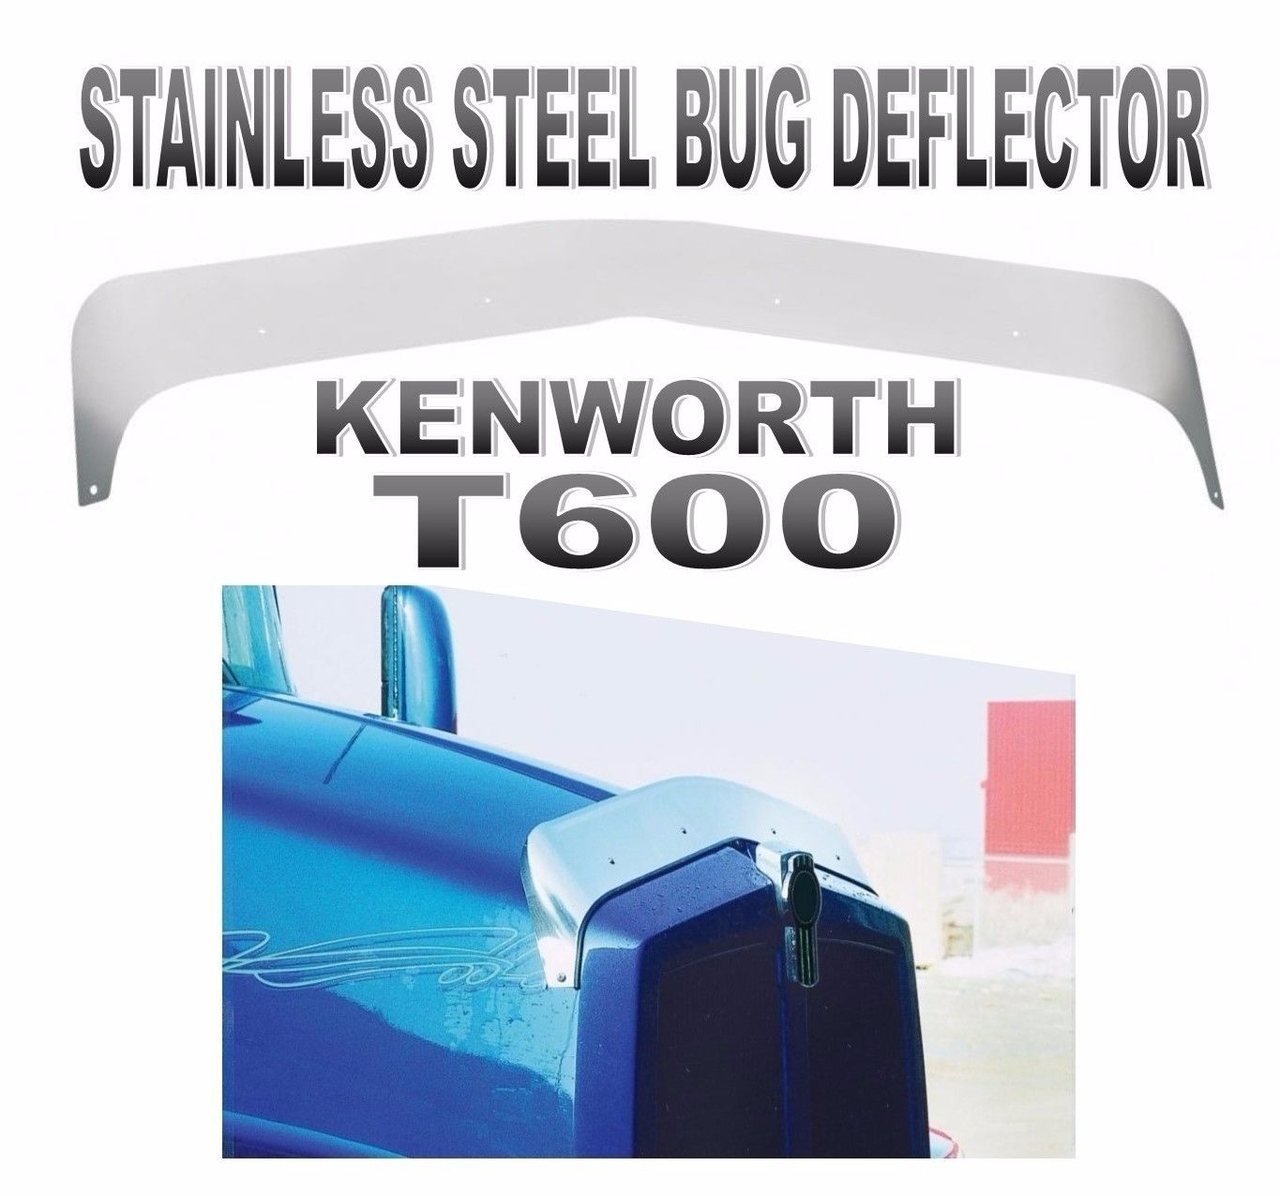 KENWORTH T600 STAINLESS STEEL BUG DEFLECTOR